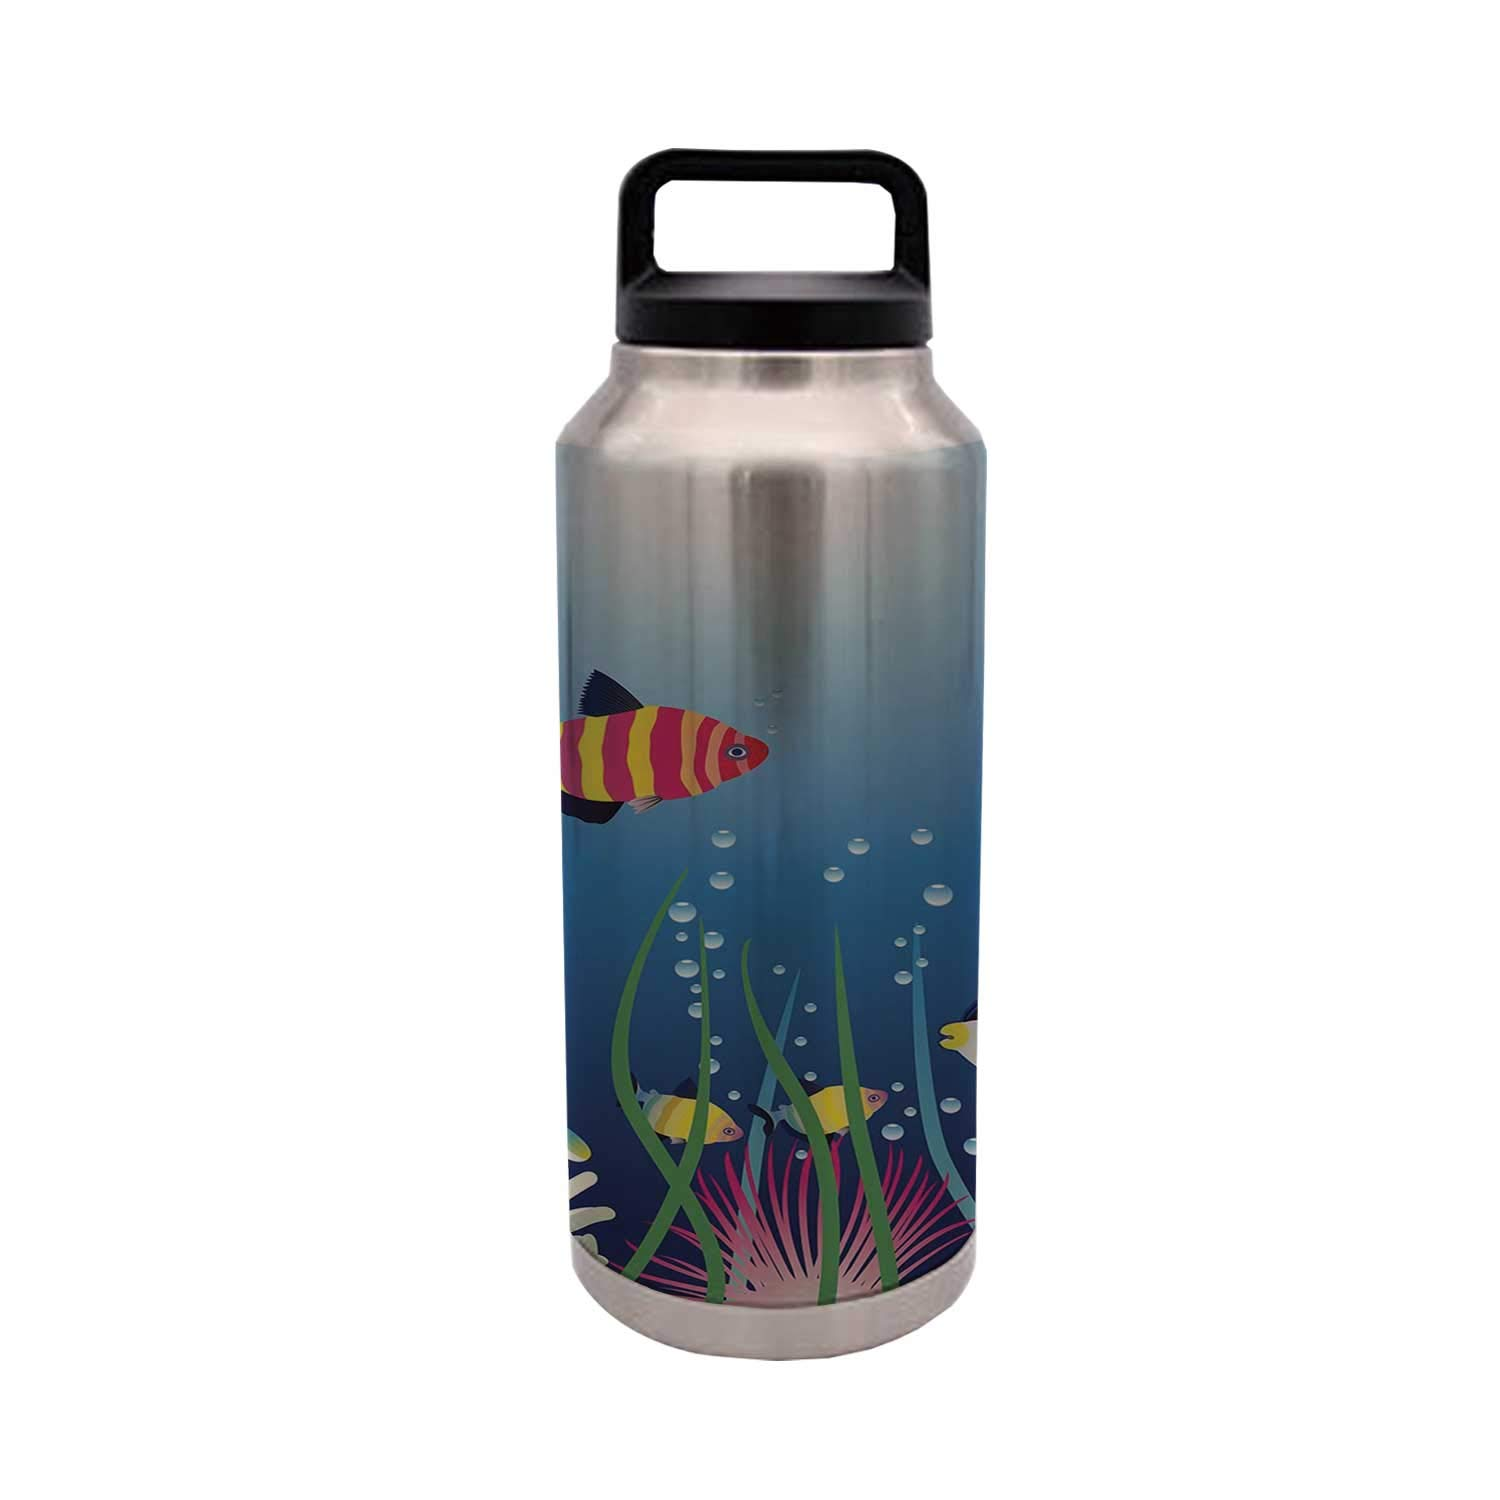 Aquarium Stylish 36oz Stainless Steel Bottle,Aquarium Seascape with Colorful Tropical Fishes Bubbles Seaweed Marine Theme Decorative for Home Travel Office,36oz by MOOCOM